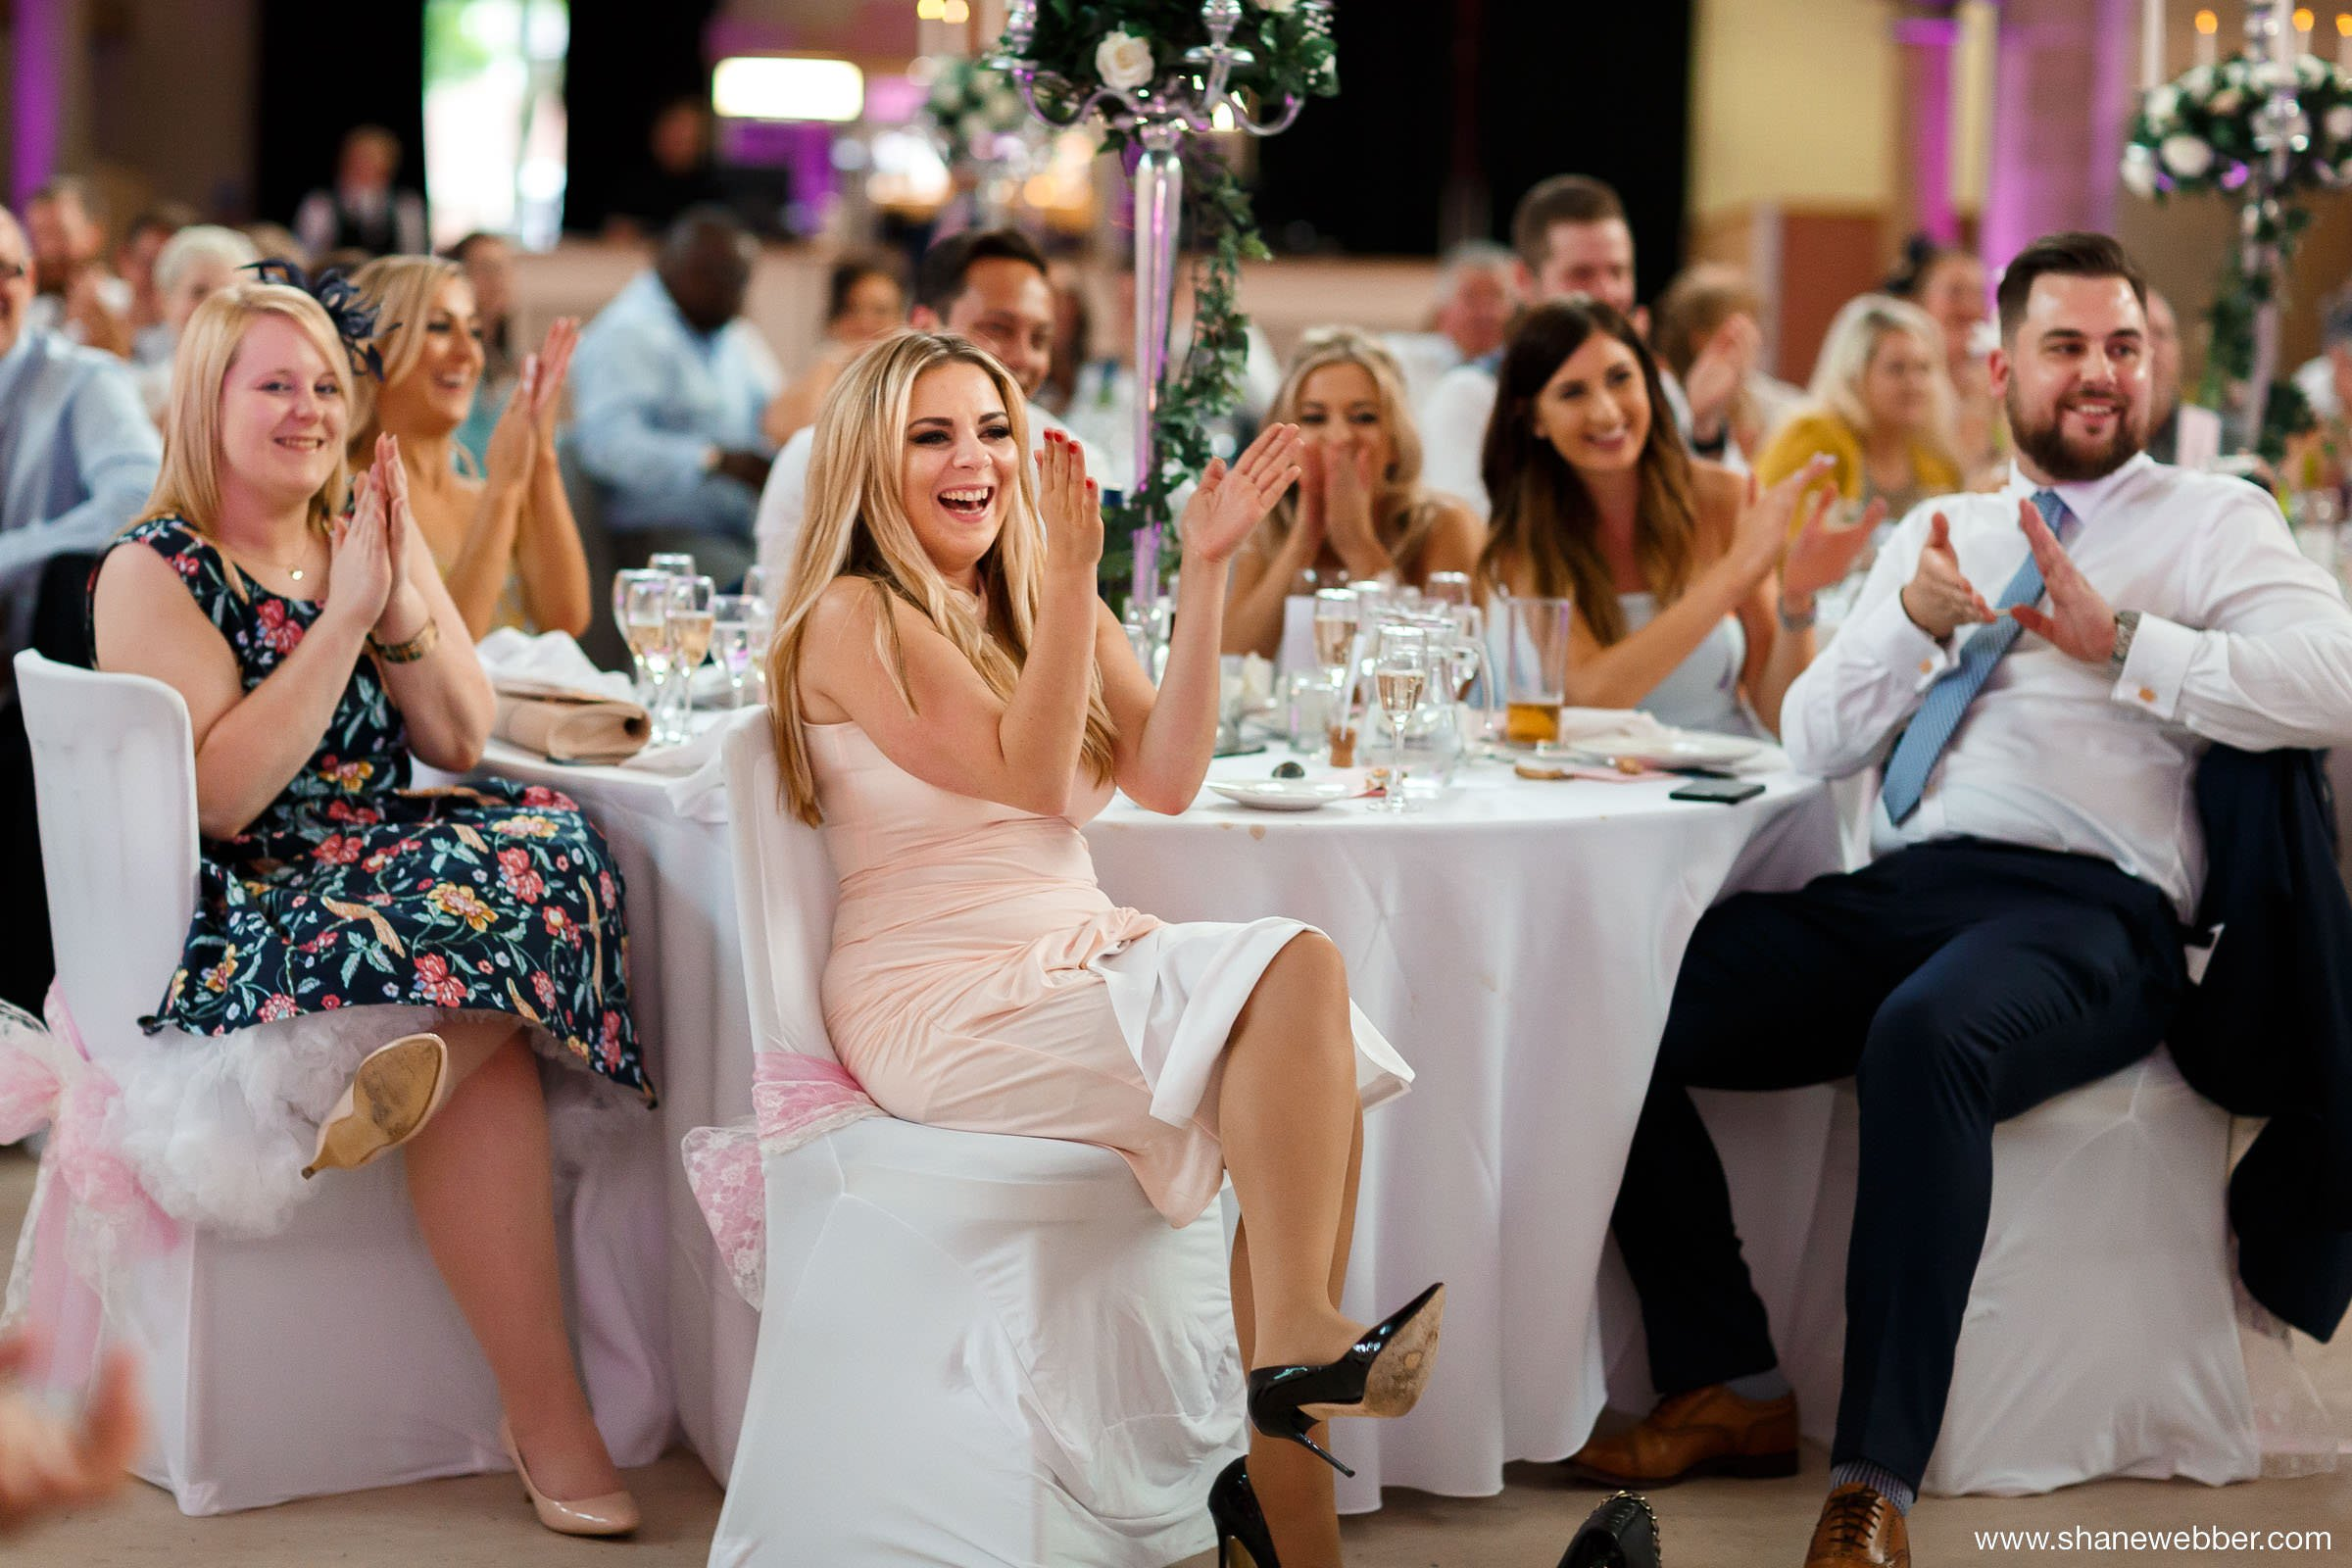 Guests reaction to funny wedding speeches